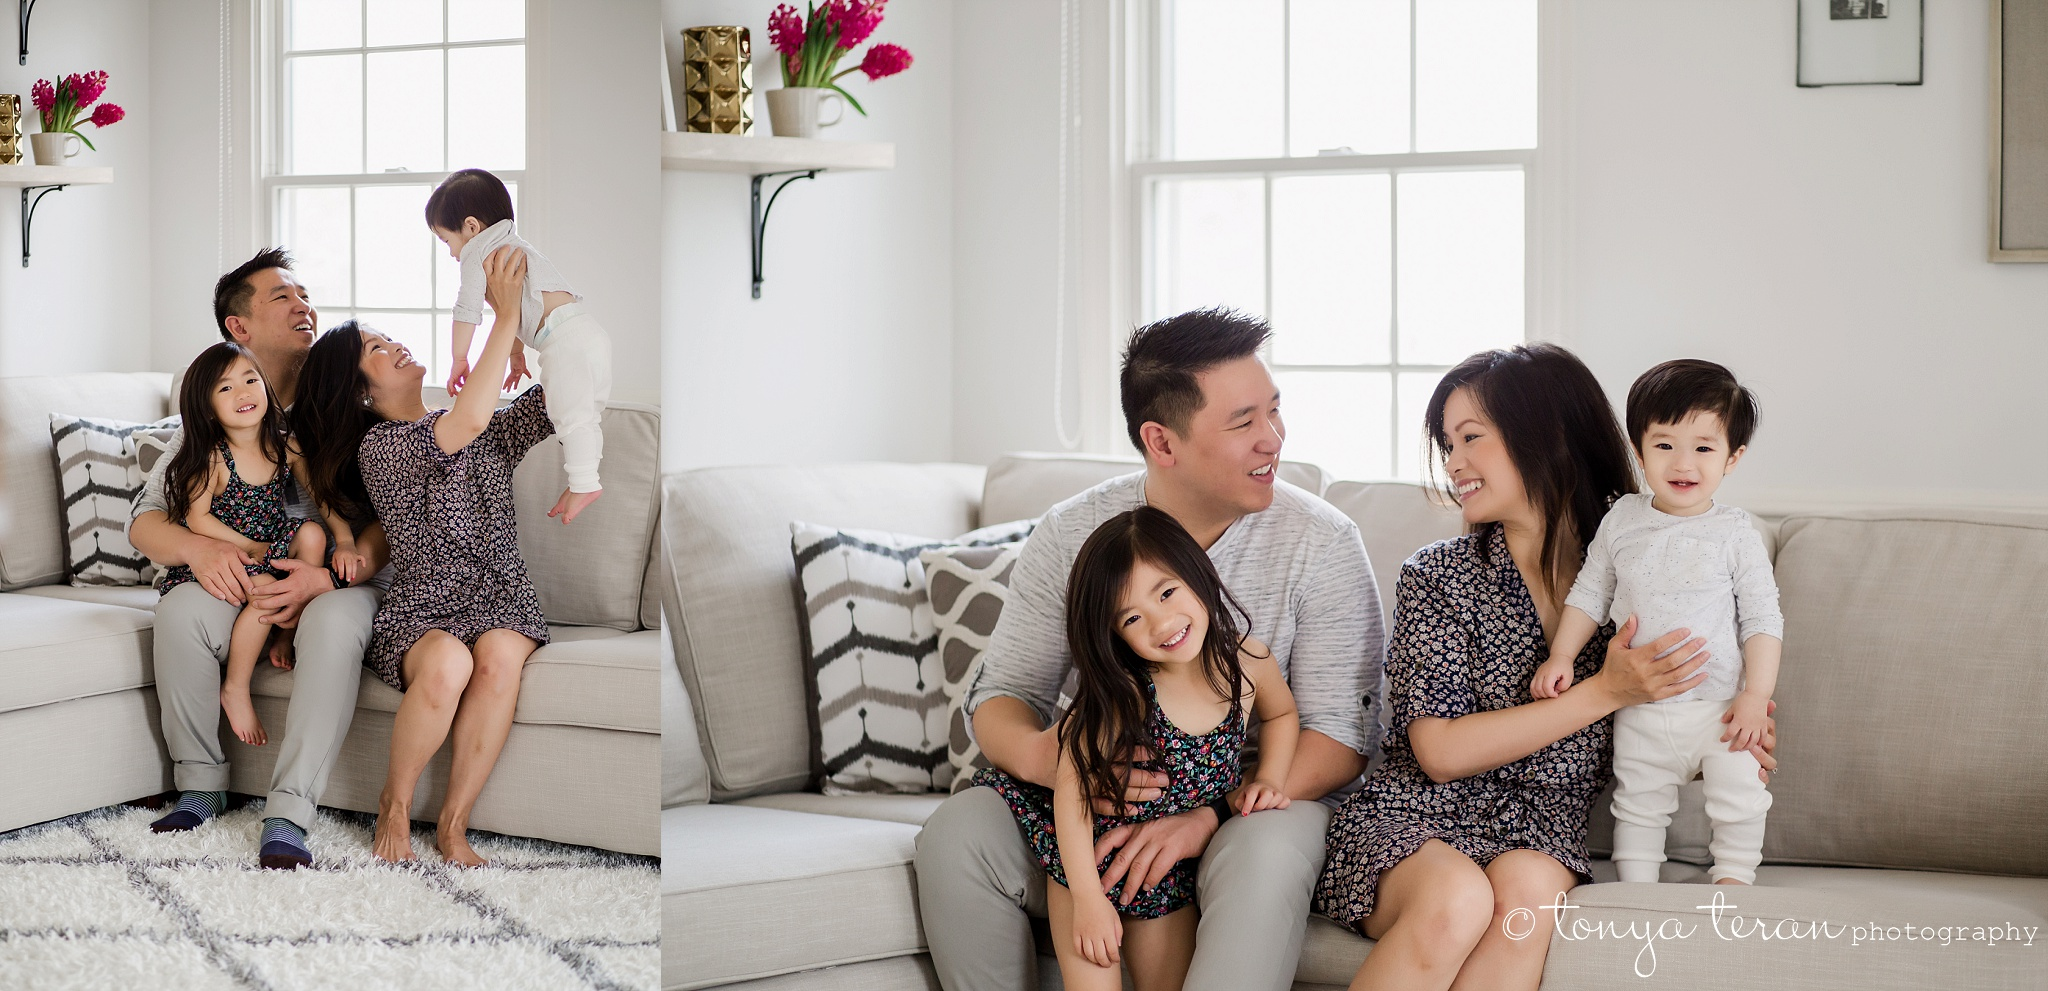 In-home Mini Family Photo Session | Tonya Teran Photography, McLean, VA #1 Best Newborn, Baby, and Family Photographer